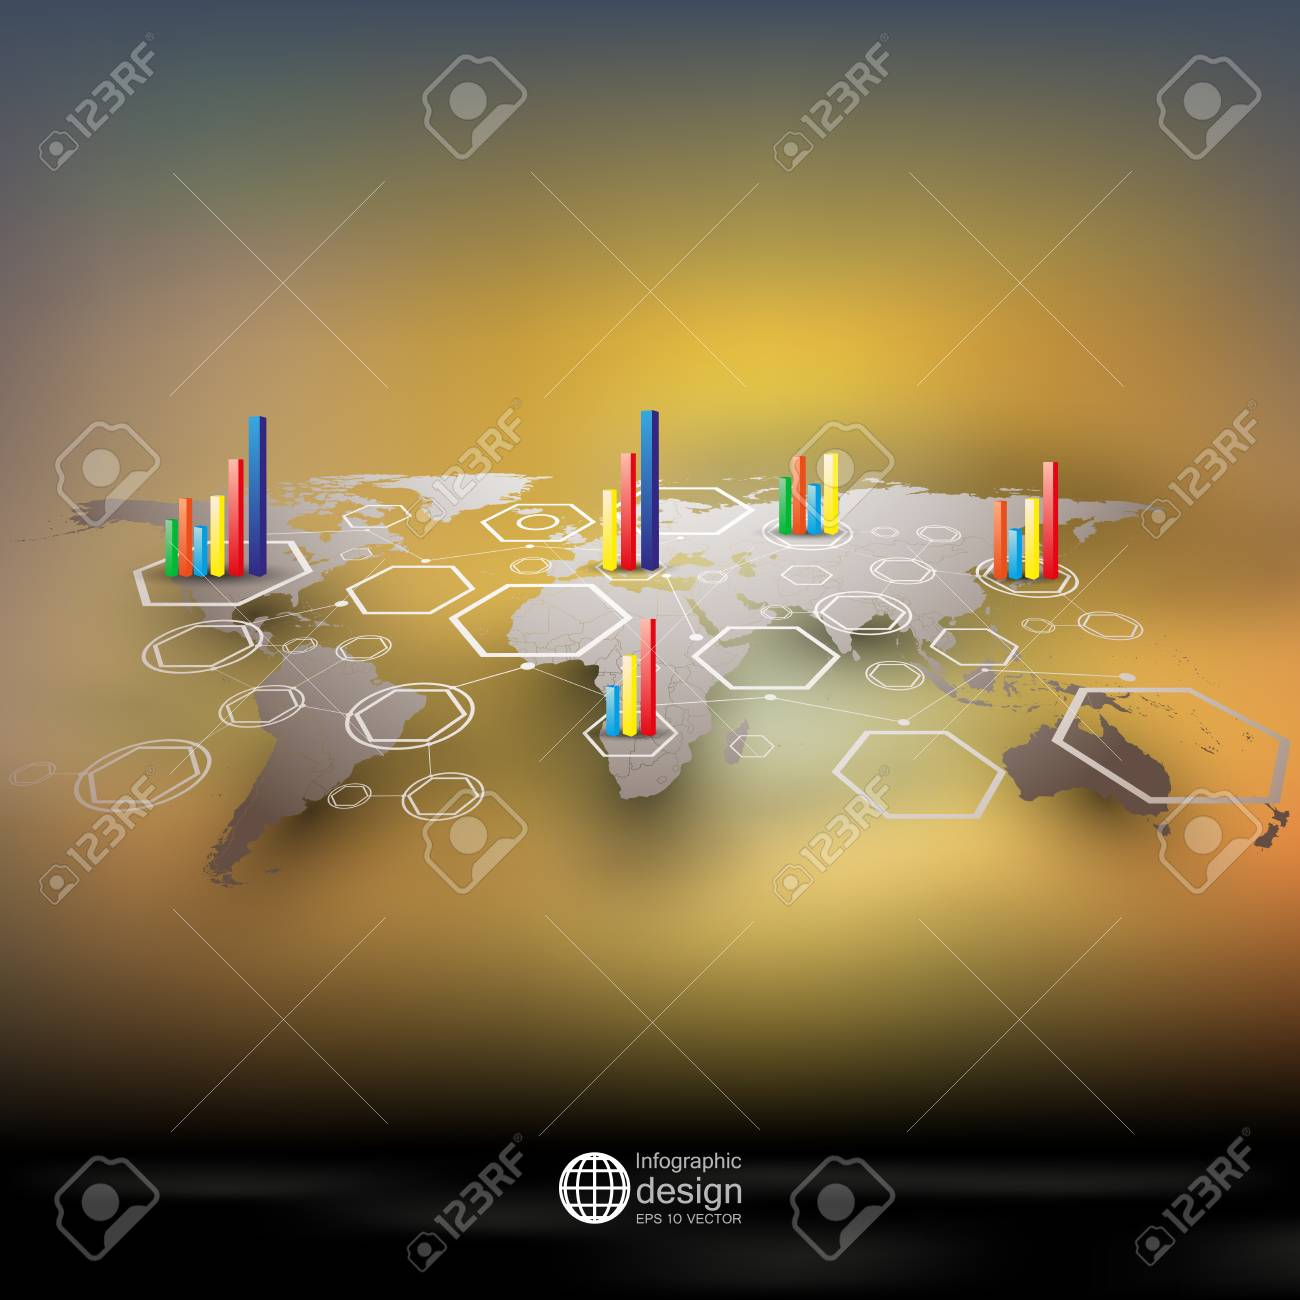 World map in perspective royalty free cliparts vectors and stock vector world map in perspective gumiabroncs Choice Image